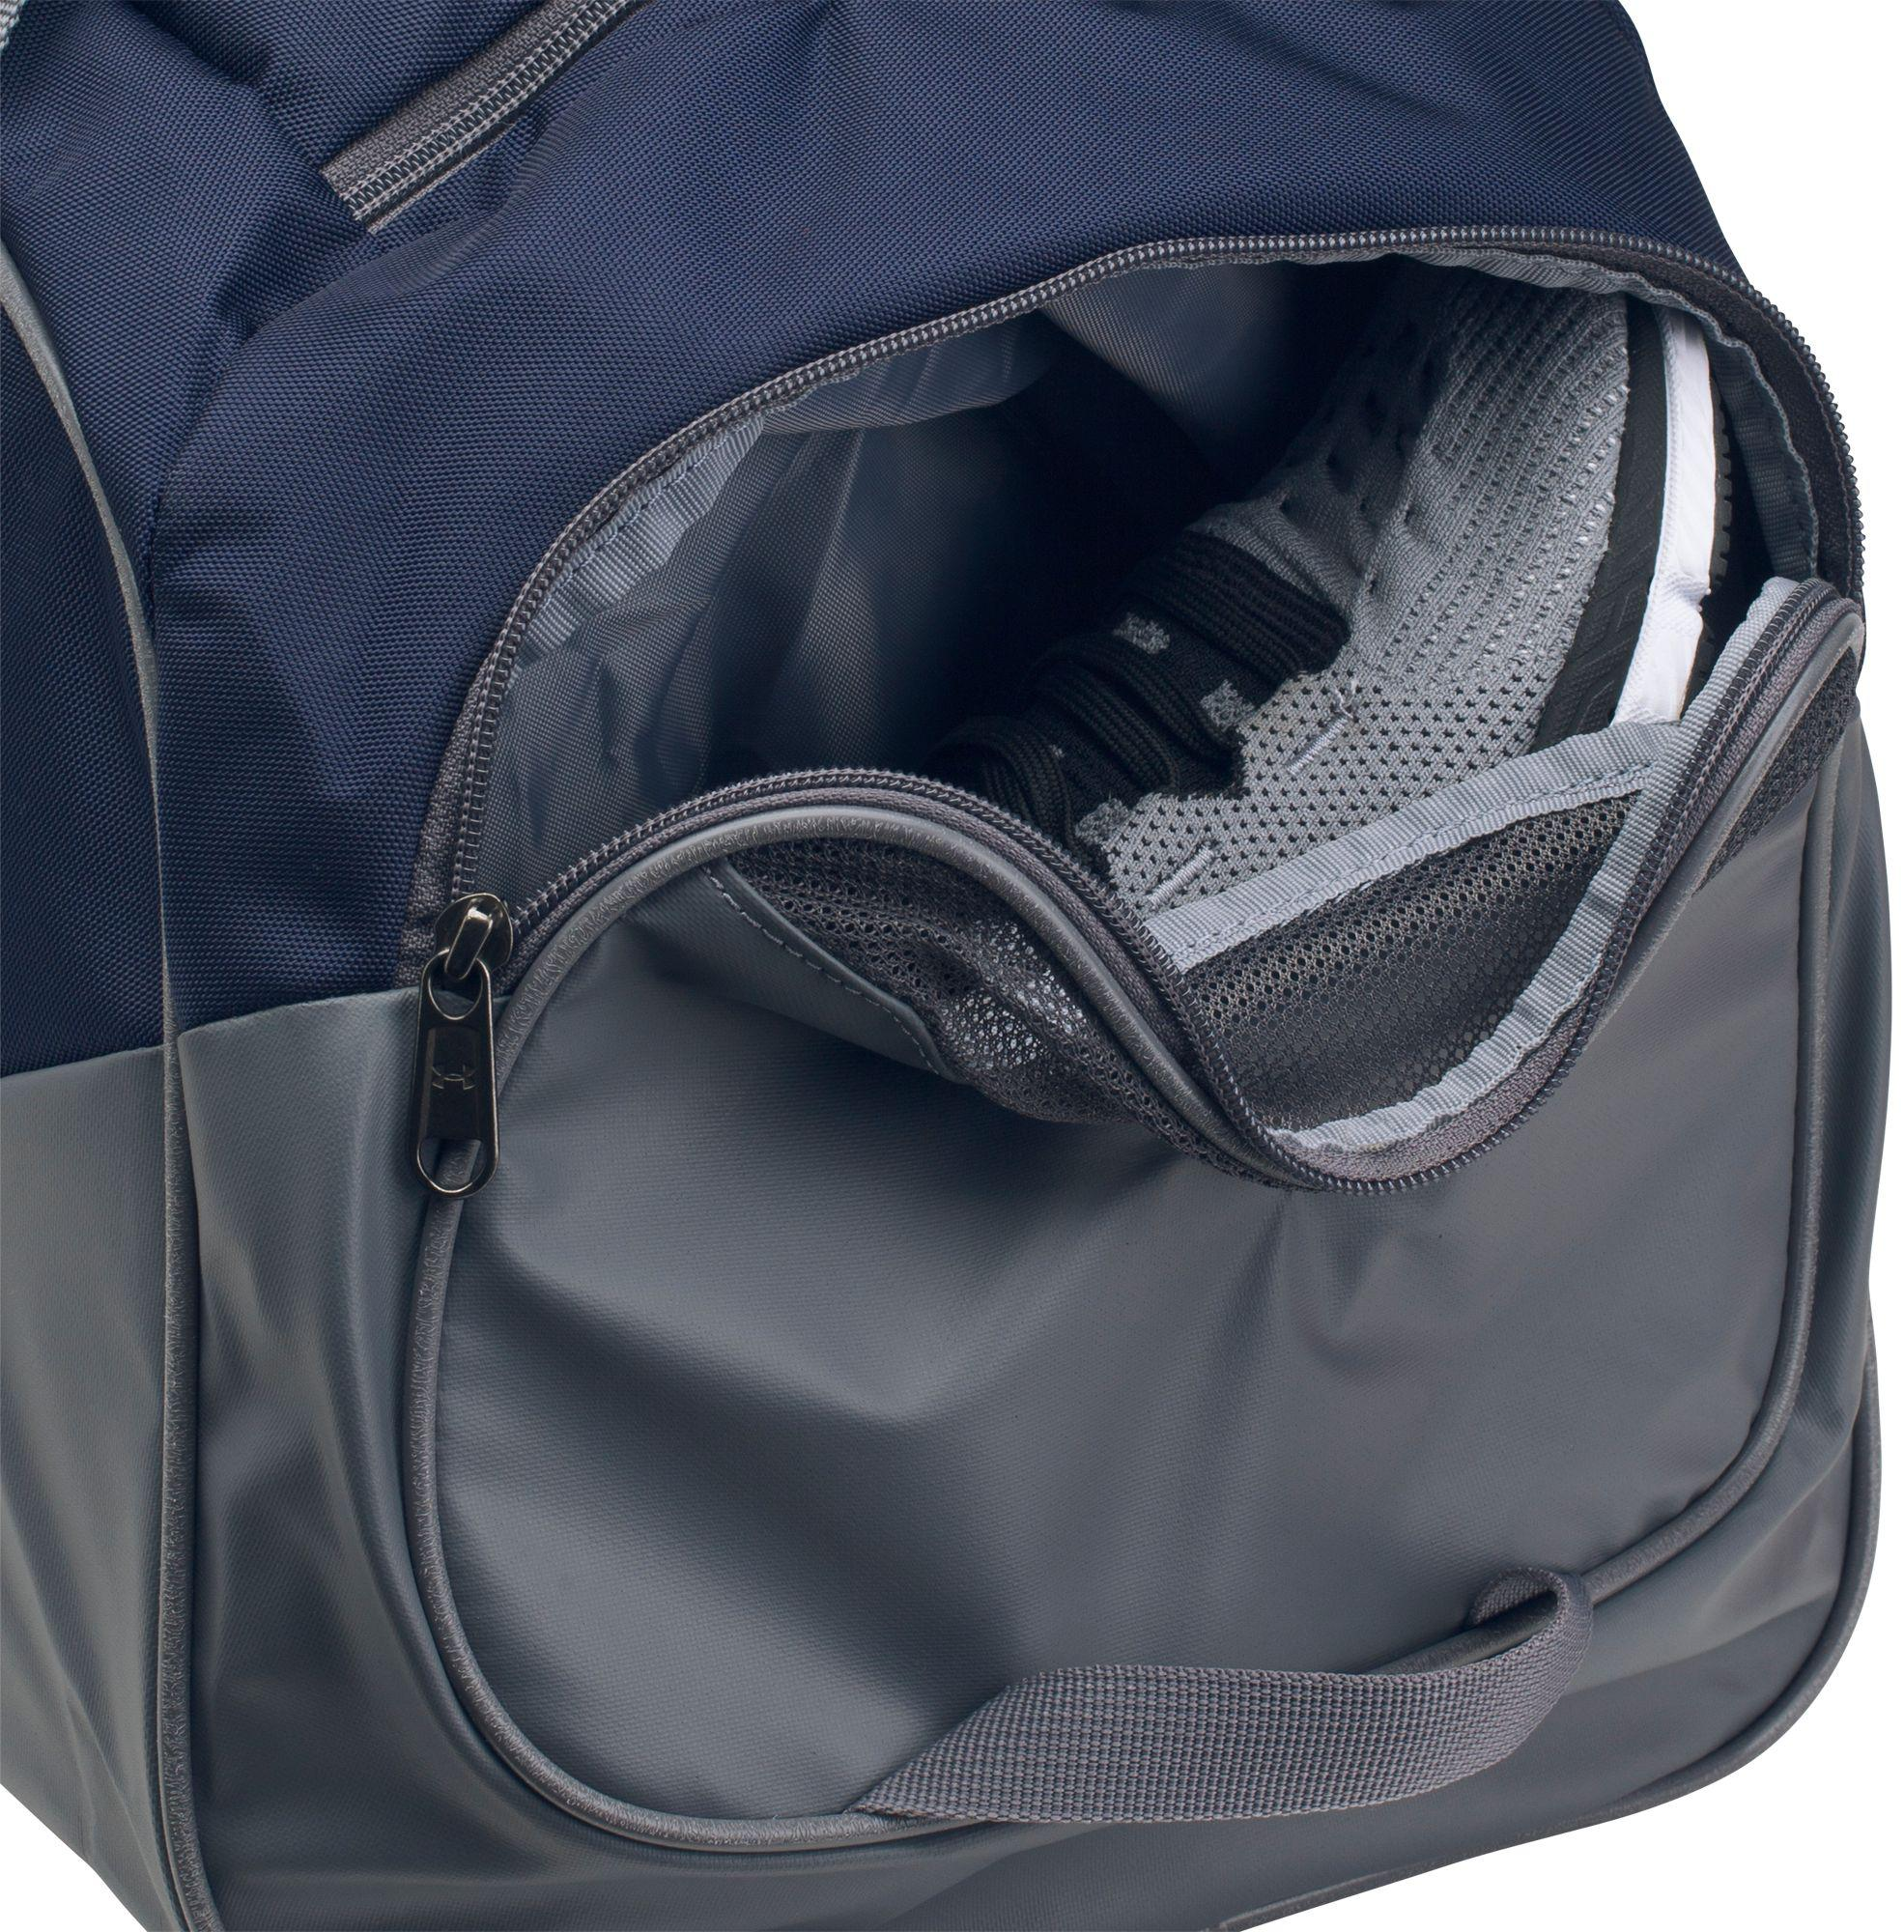 ccbc5d384 Under Armour Undeniable 3.0 Small Duffle Bag in Blue for Men - Lyst